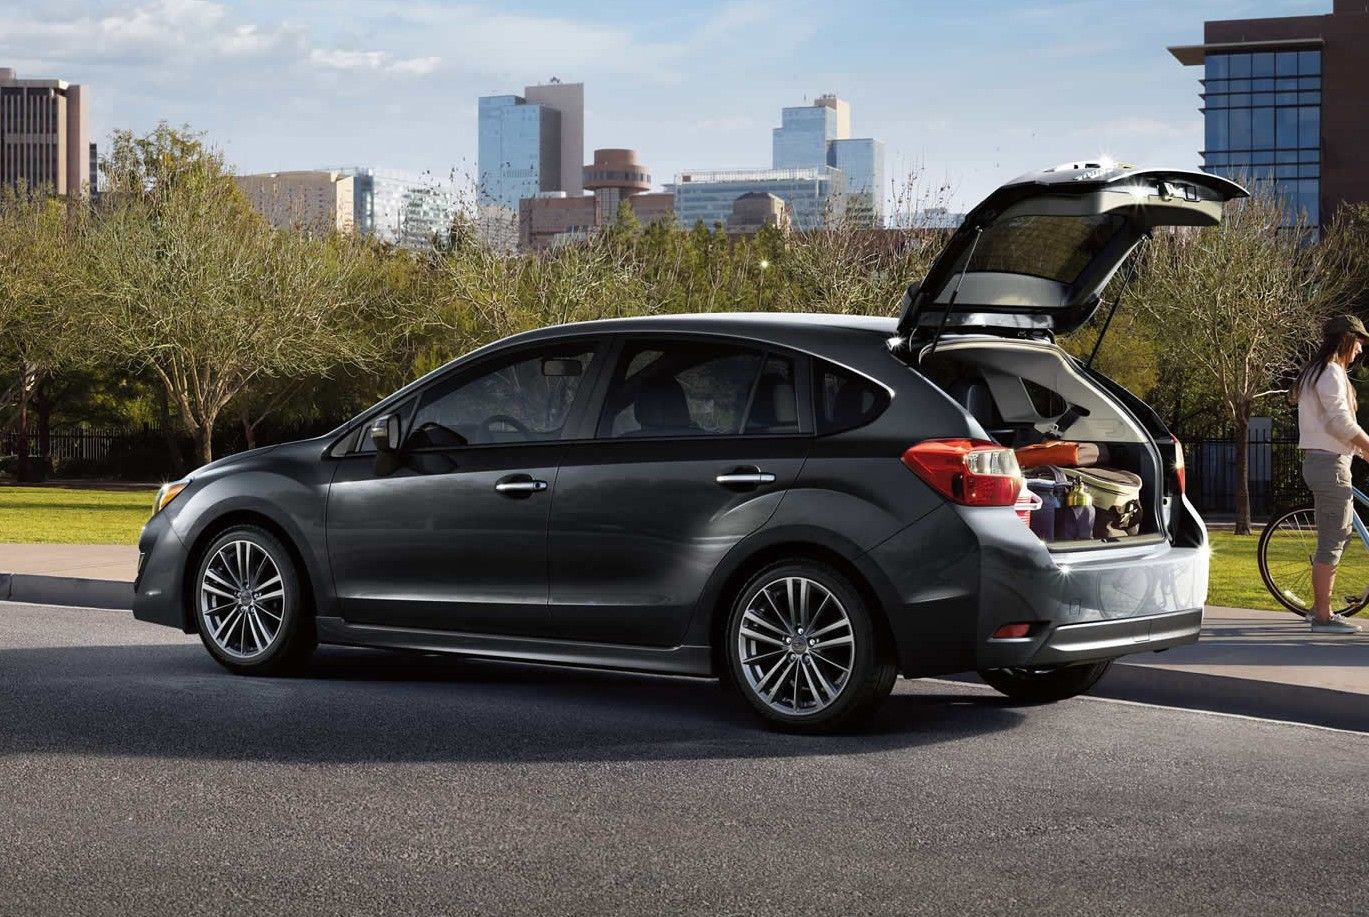 Awesome Subaru Impreza 2016 Current pilation